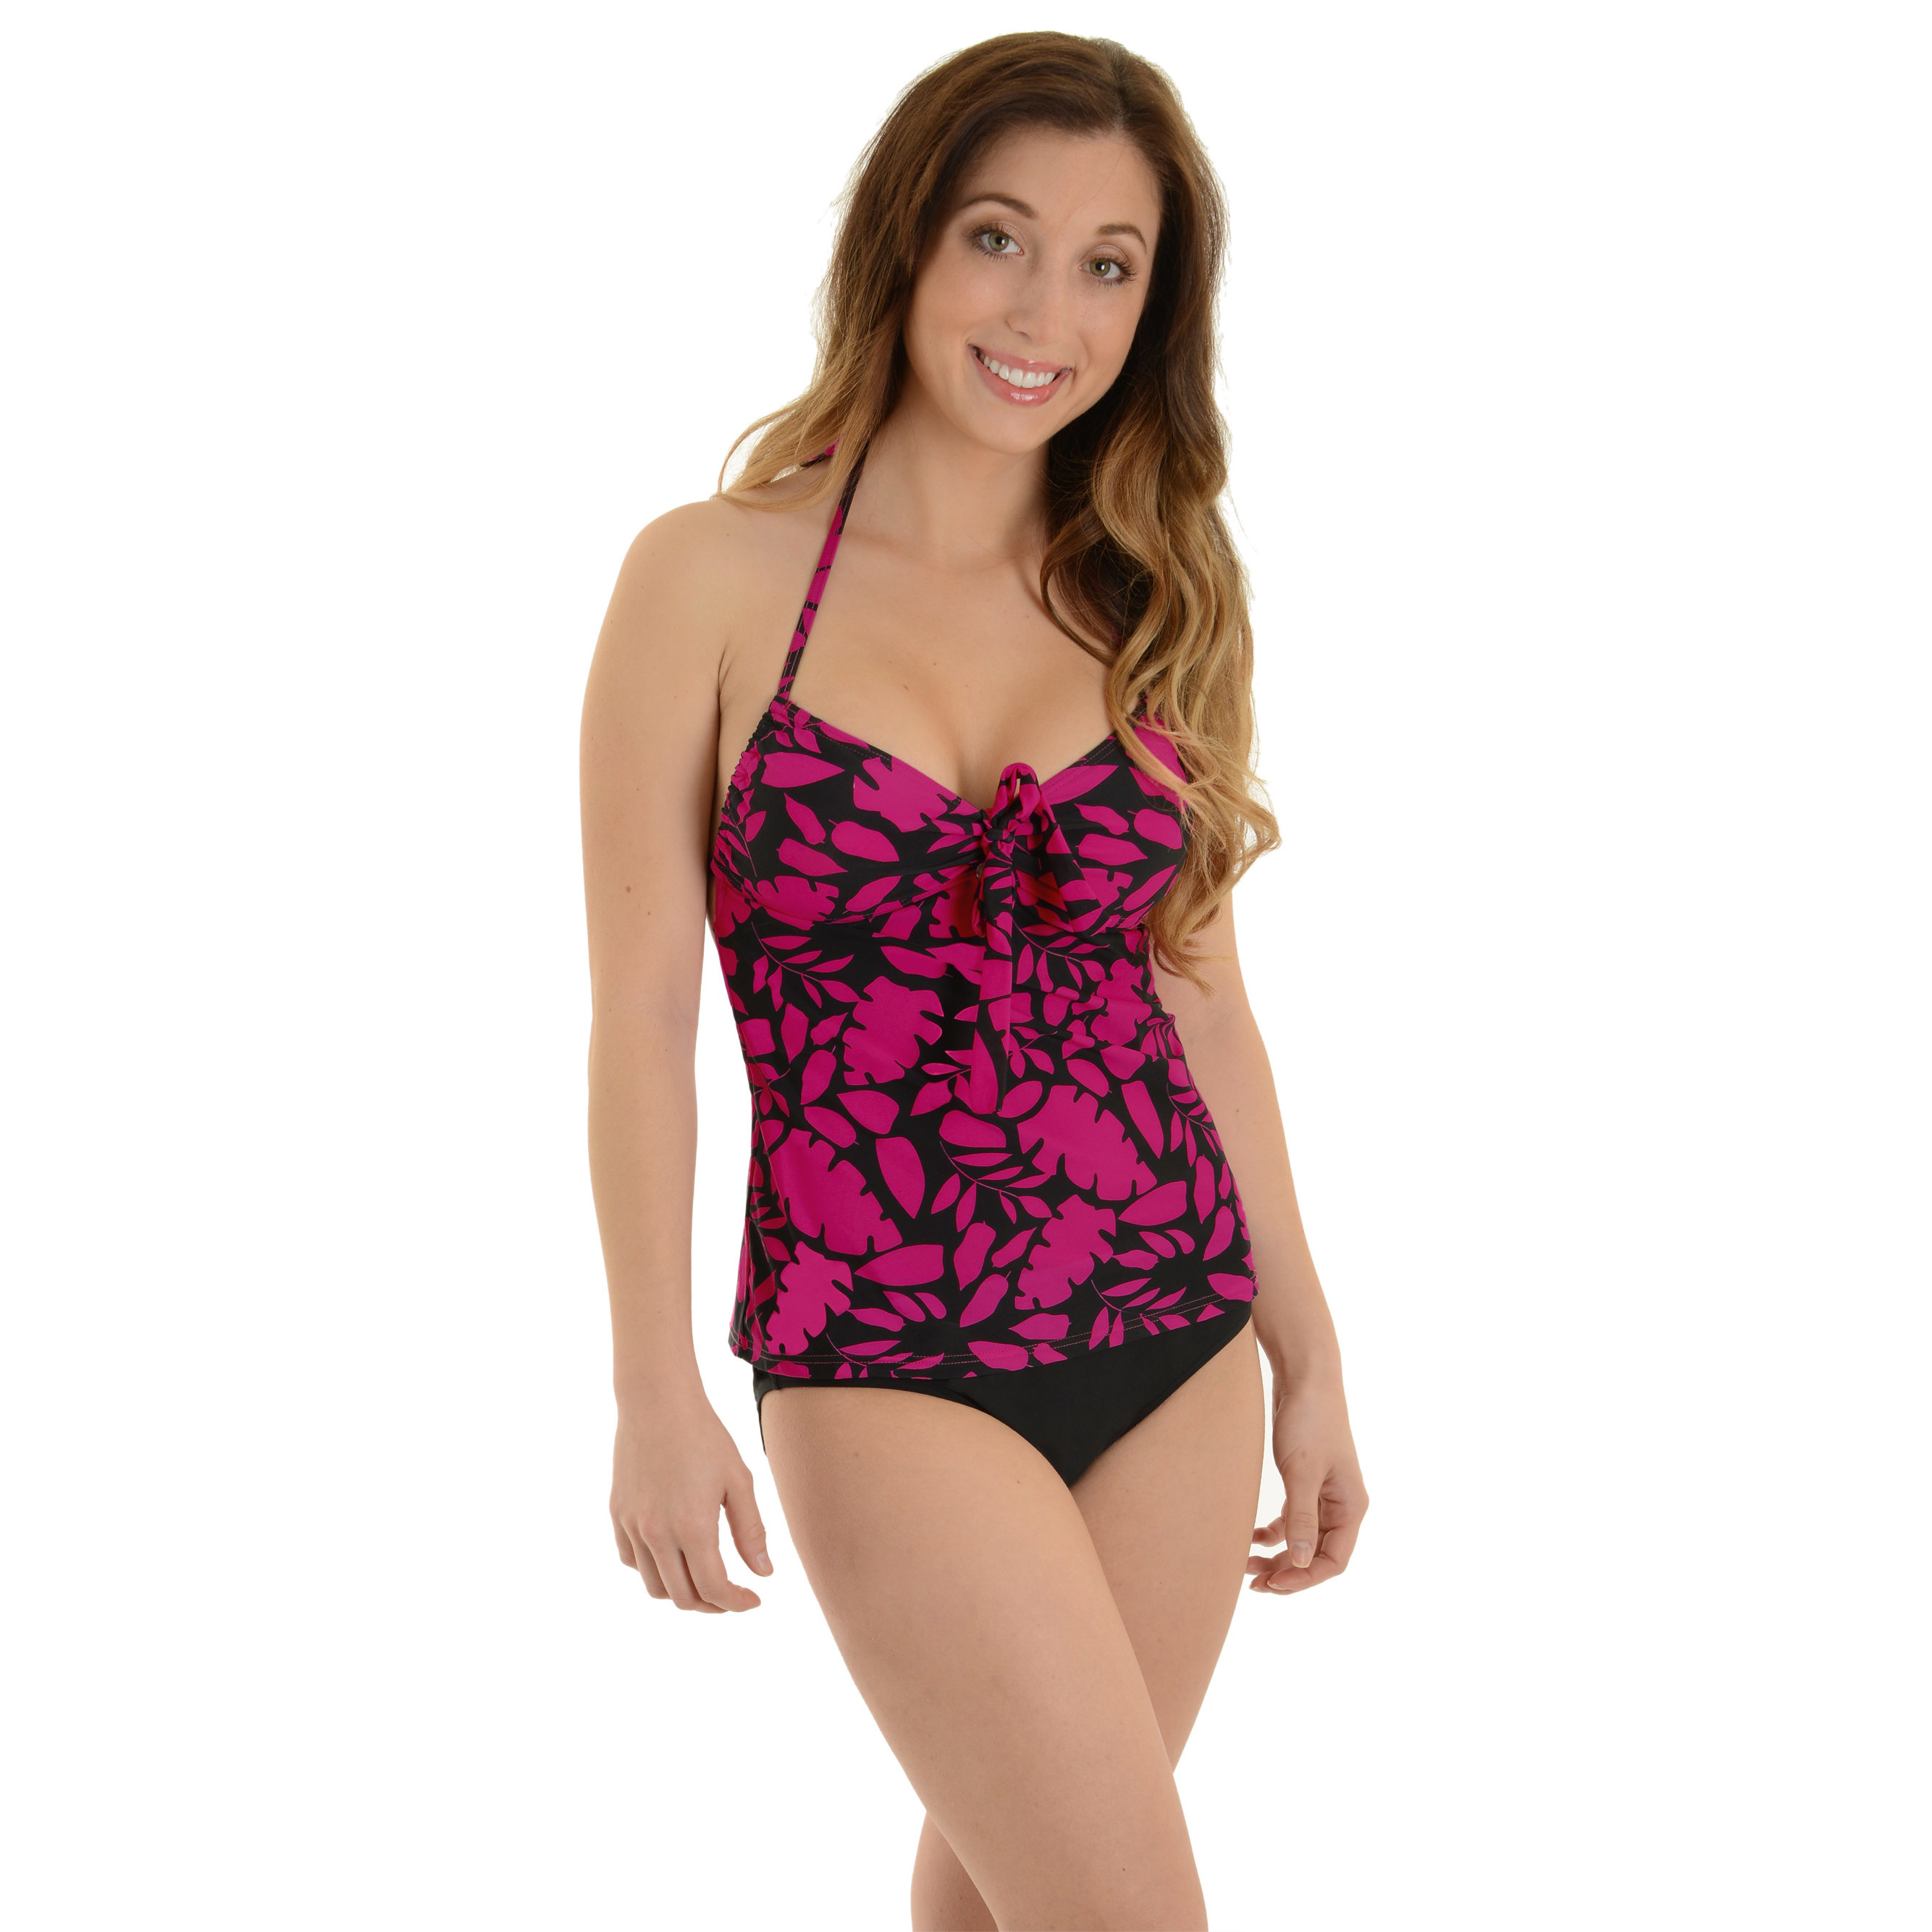 Caribbean Women's Tankini Swimsuit Halter 2 Piece Set Hot Pink and Black Print